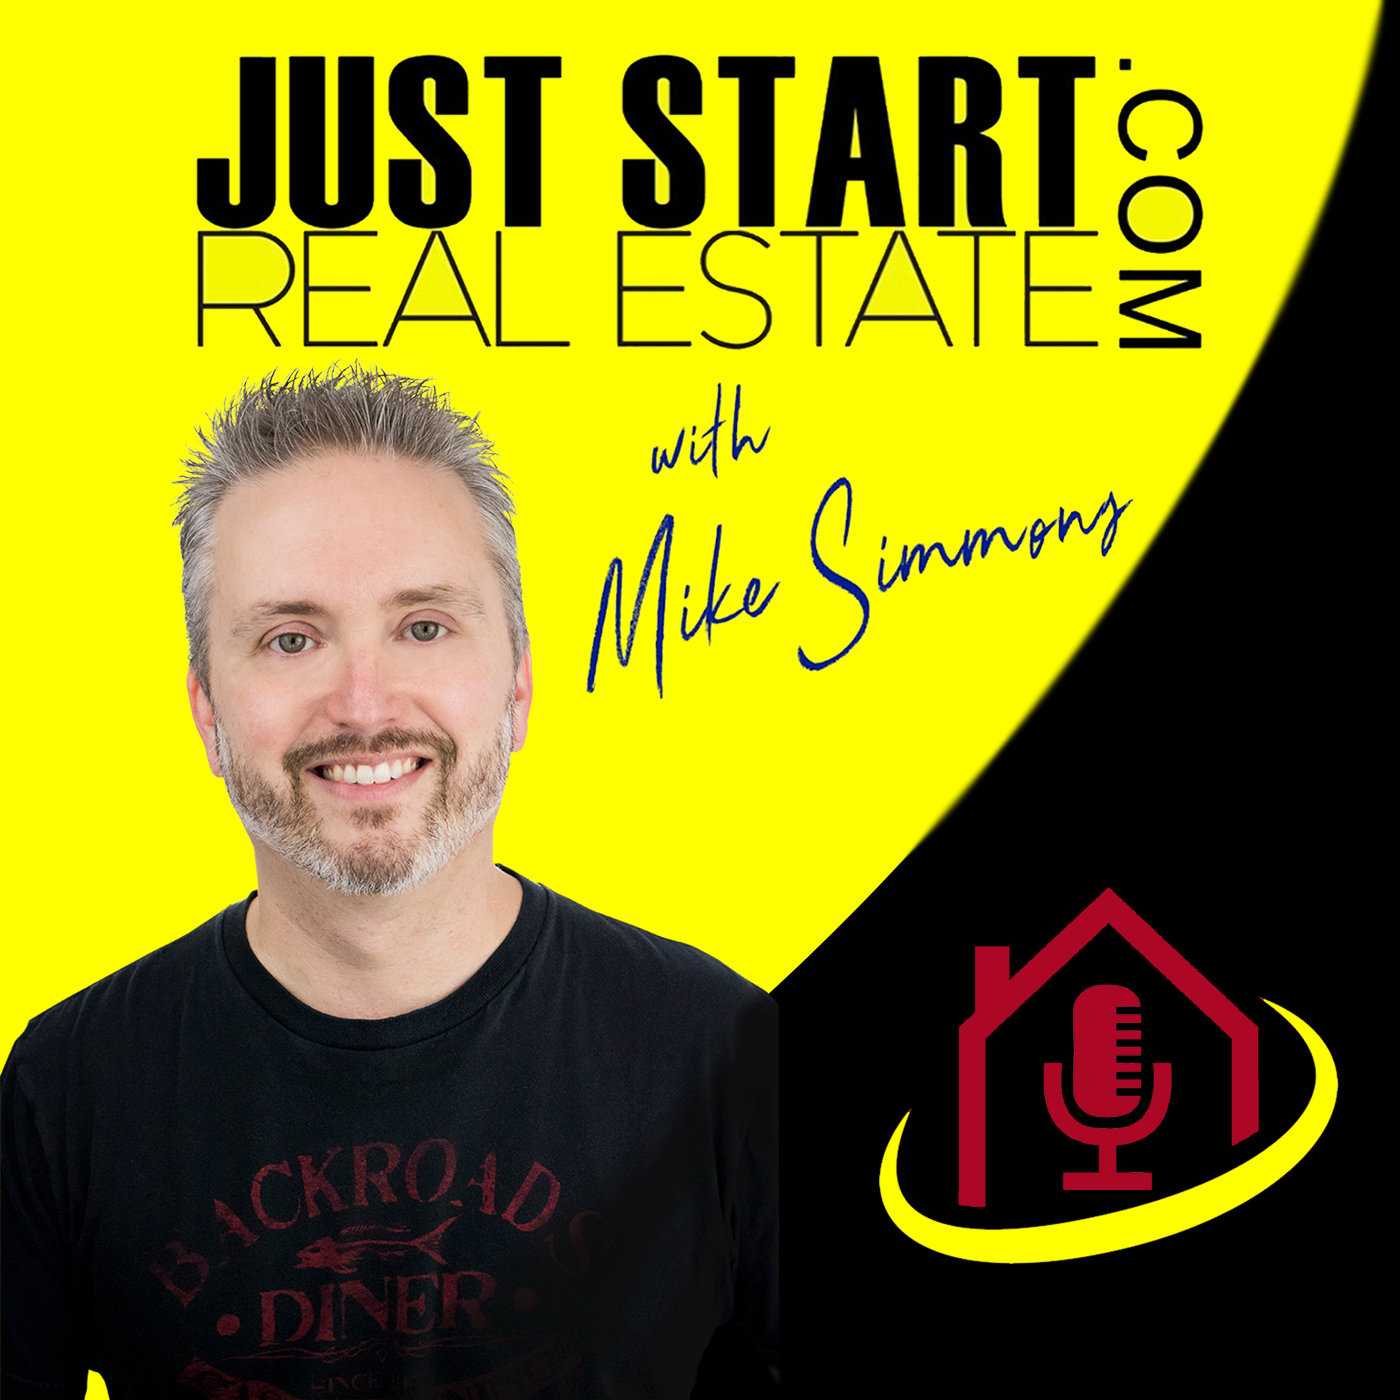 Just Start Real Estate  l  Real Estate Investing Explained  l  Daily Shows Designed To Entertain, Inspire And Educate